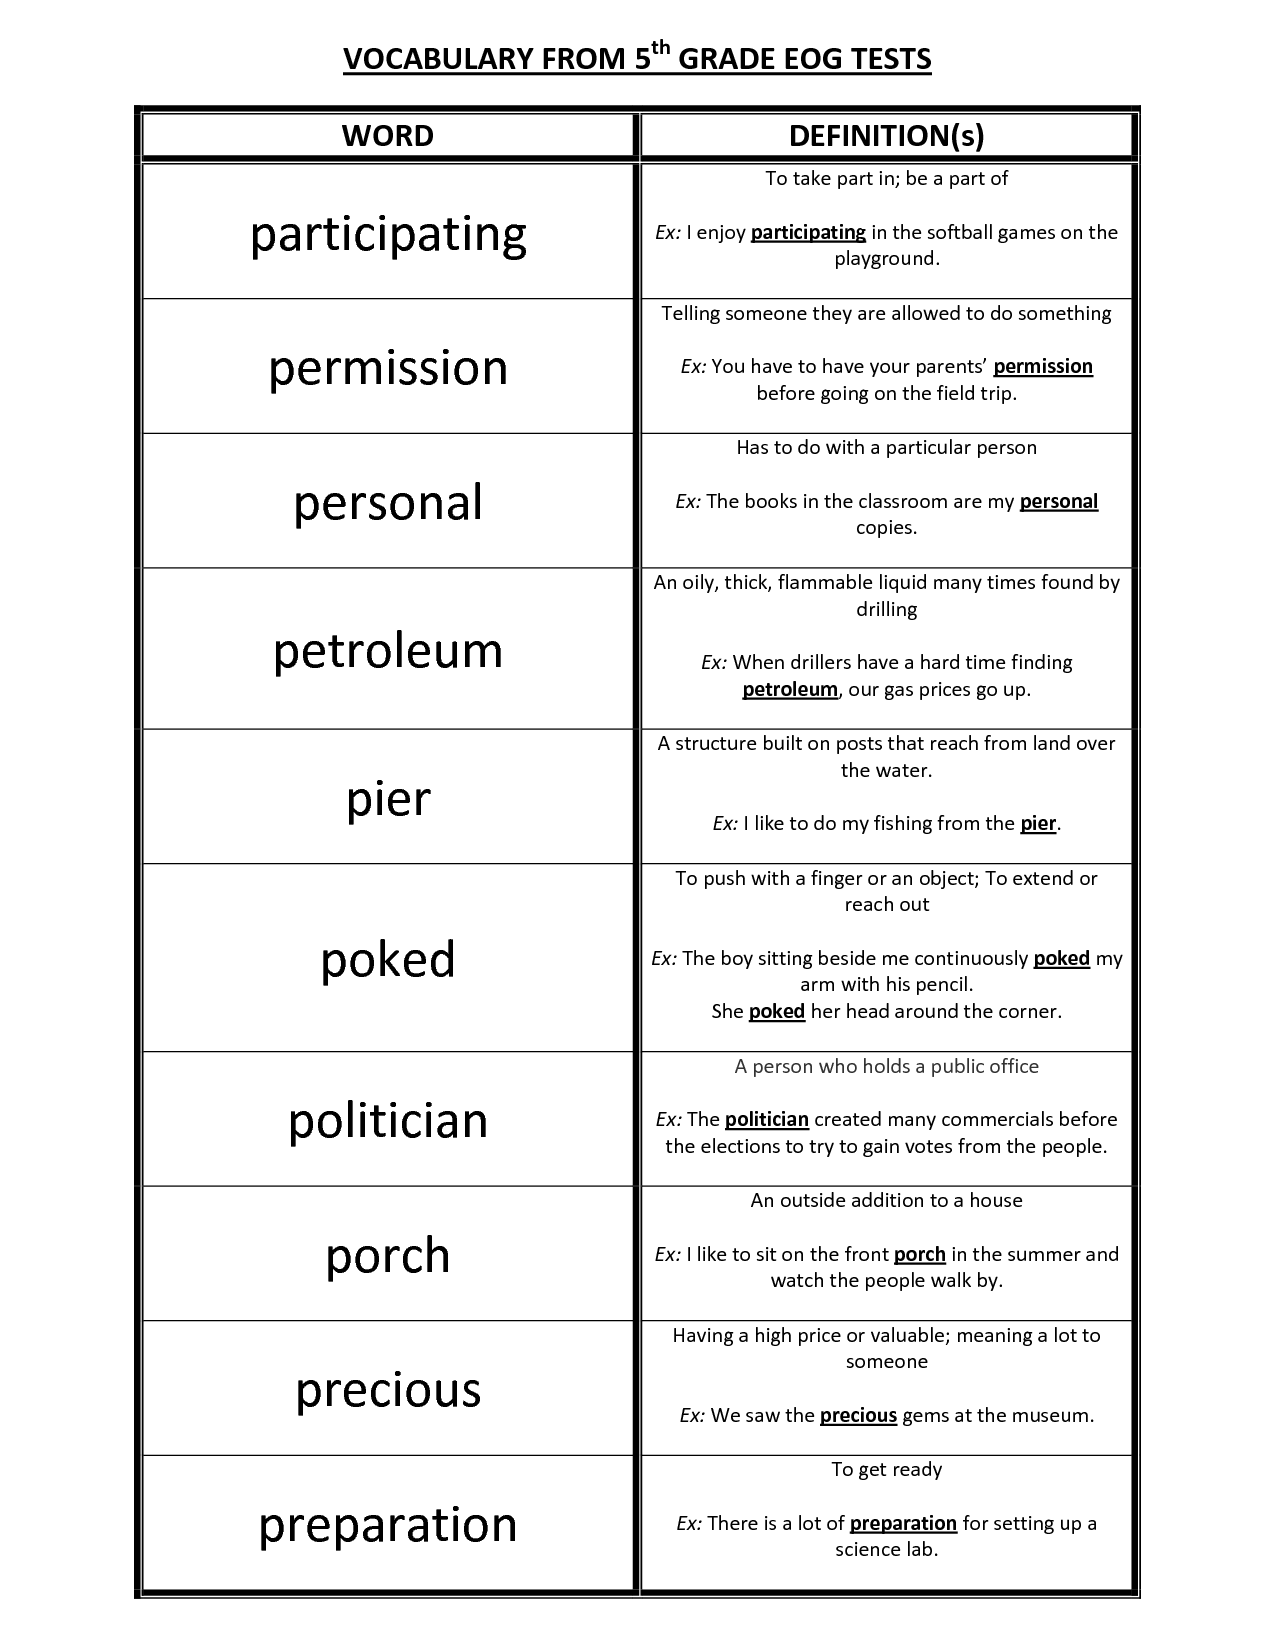 5th Grade Science Vocabulary Worksheets